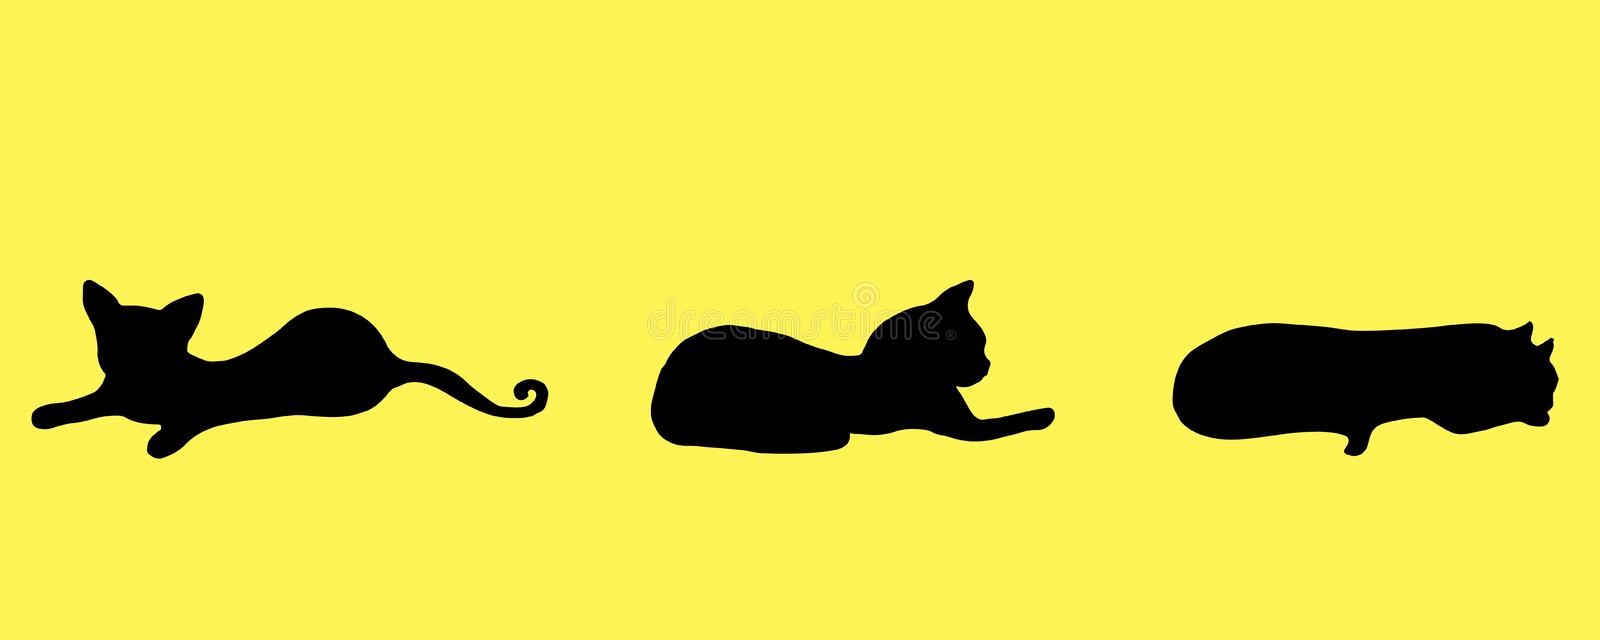 Collection silhouette three black small, funny, playful kitten, royalty free illustration